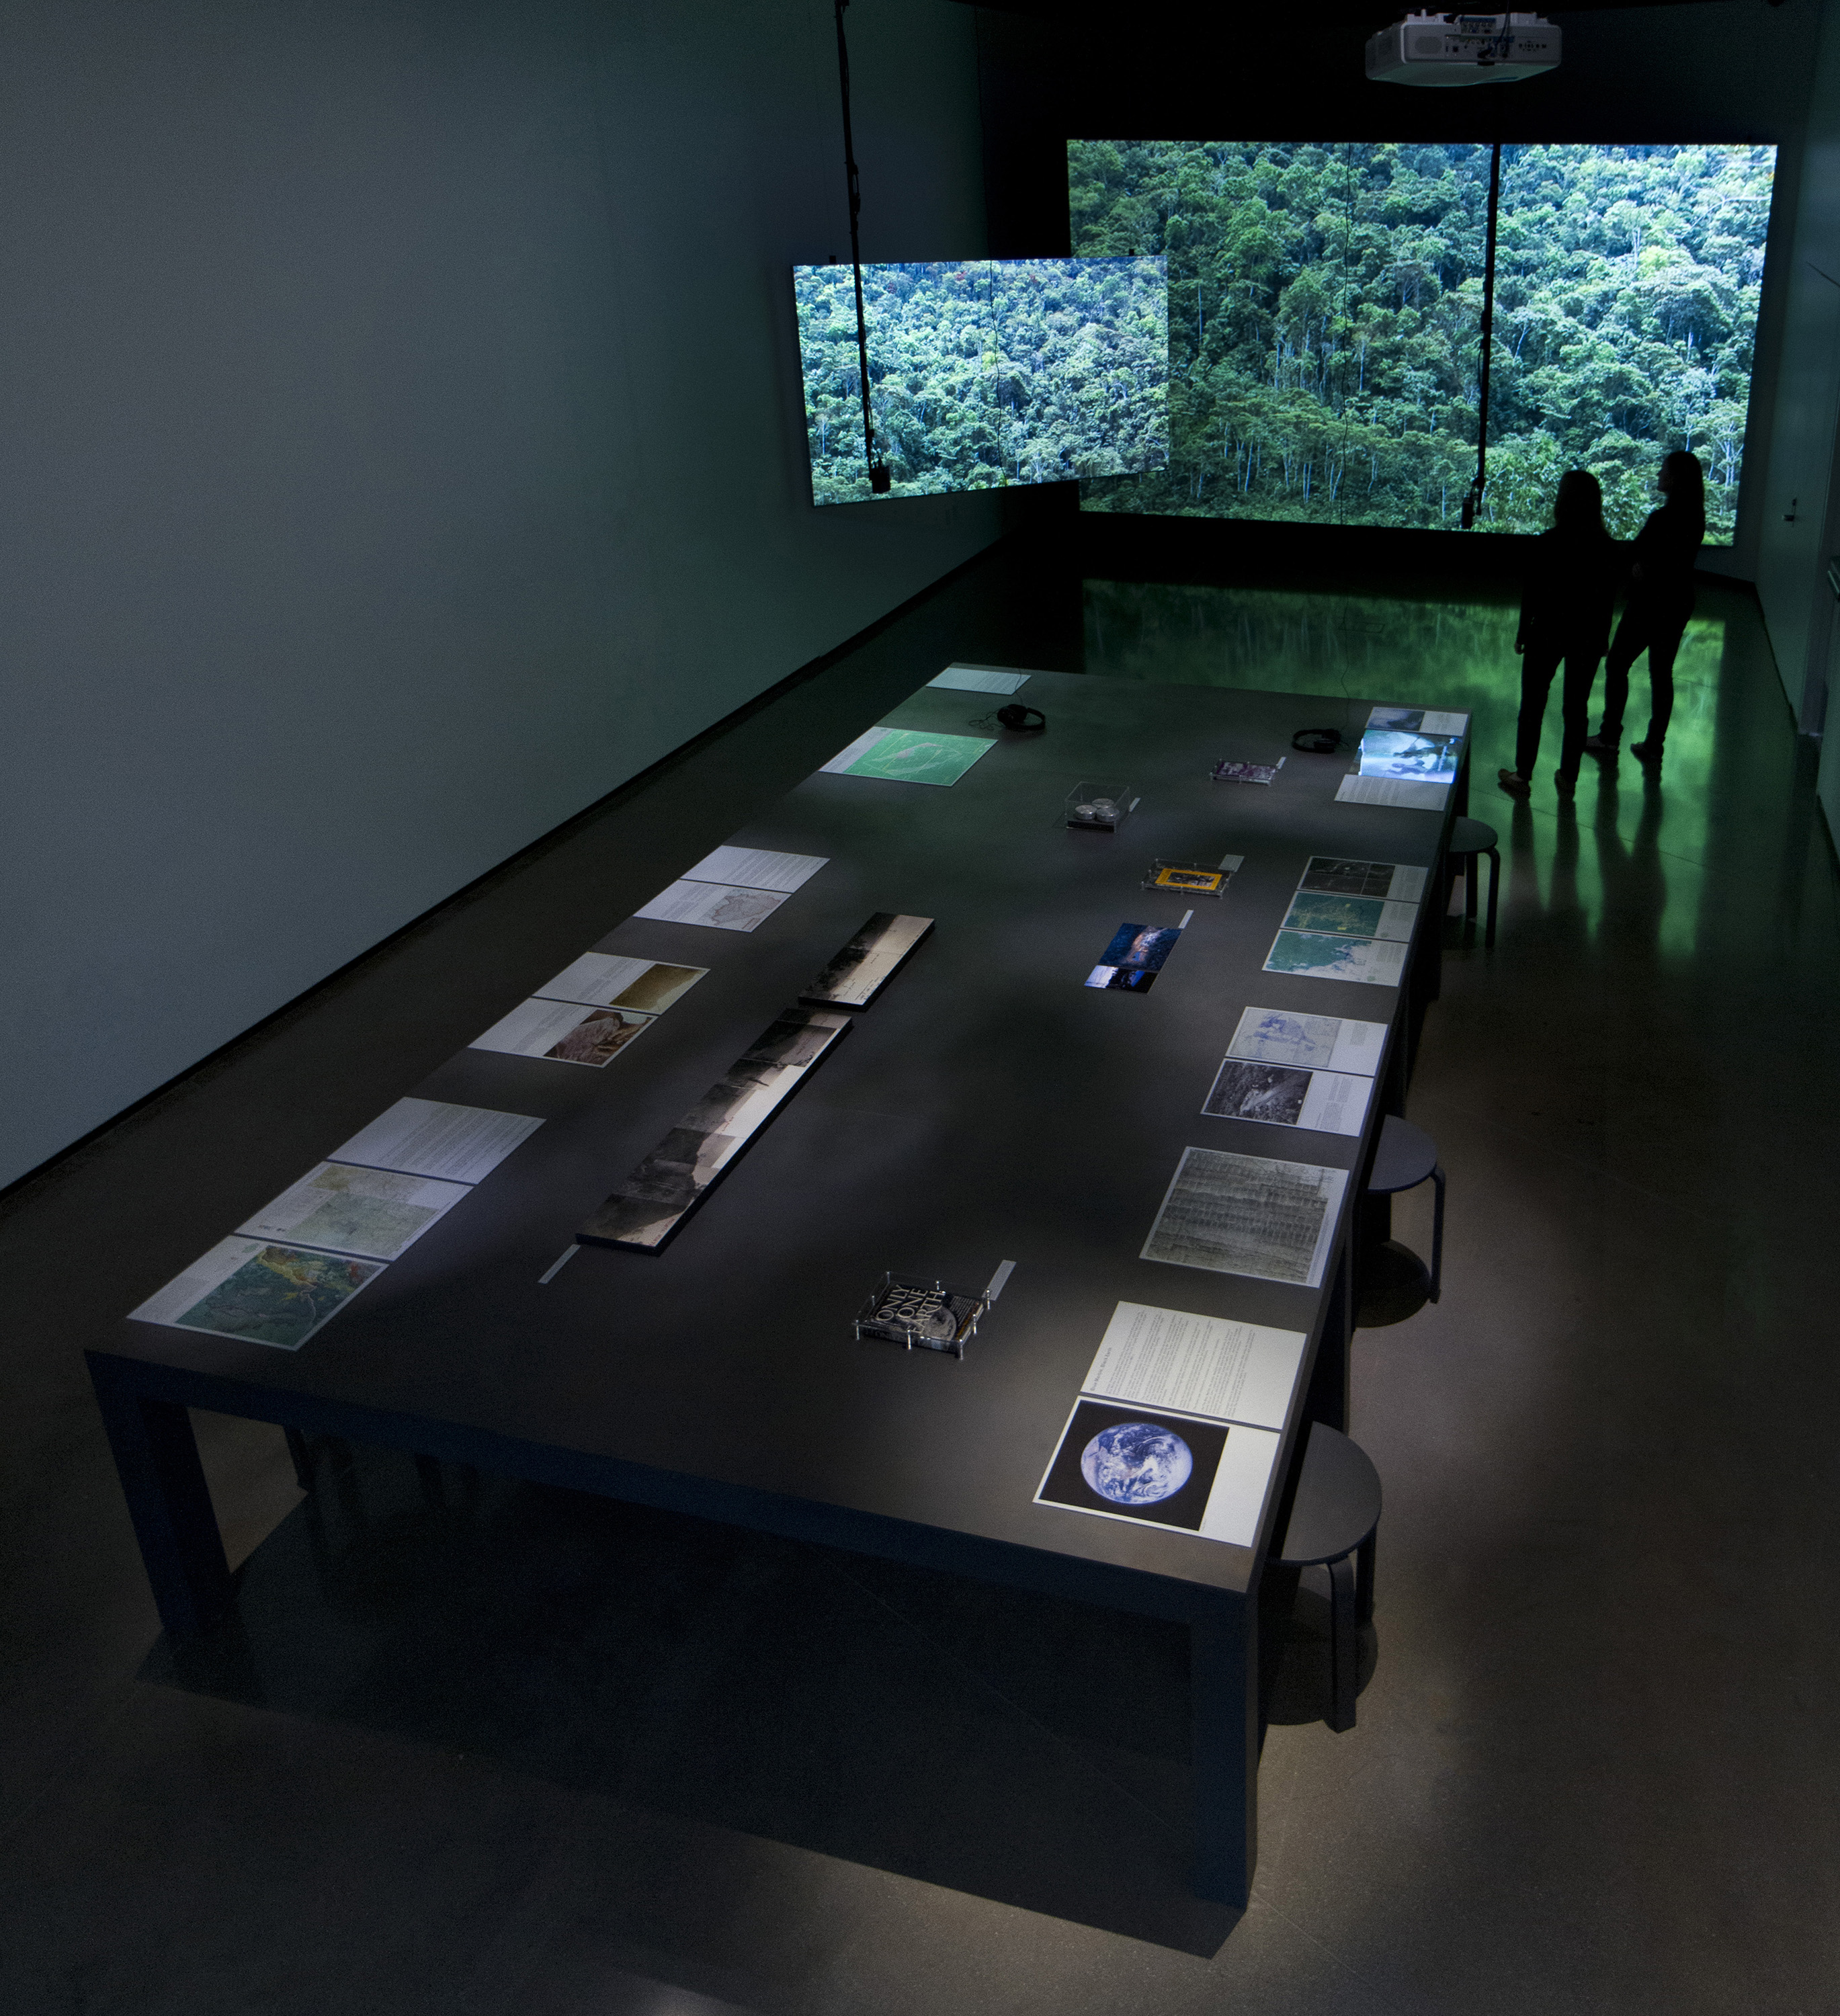 <i>The Land Grant: Forest Law</i>, installation view at the Eli and Edythe Broad Art Museum at Michigan State University, 2014. Photo: Eat Pomegranate Photography